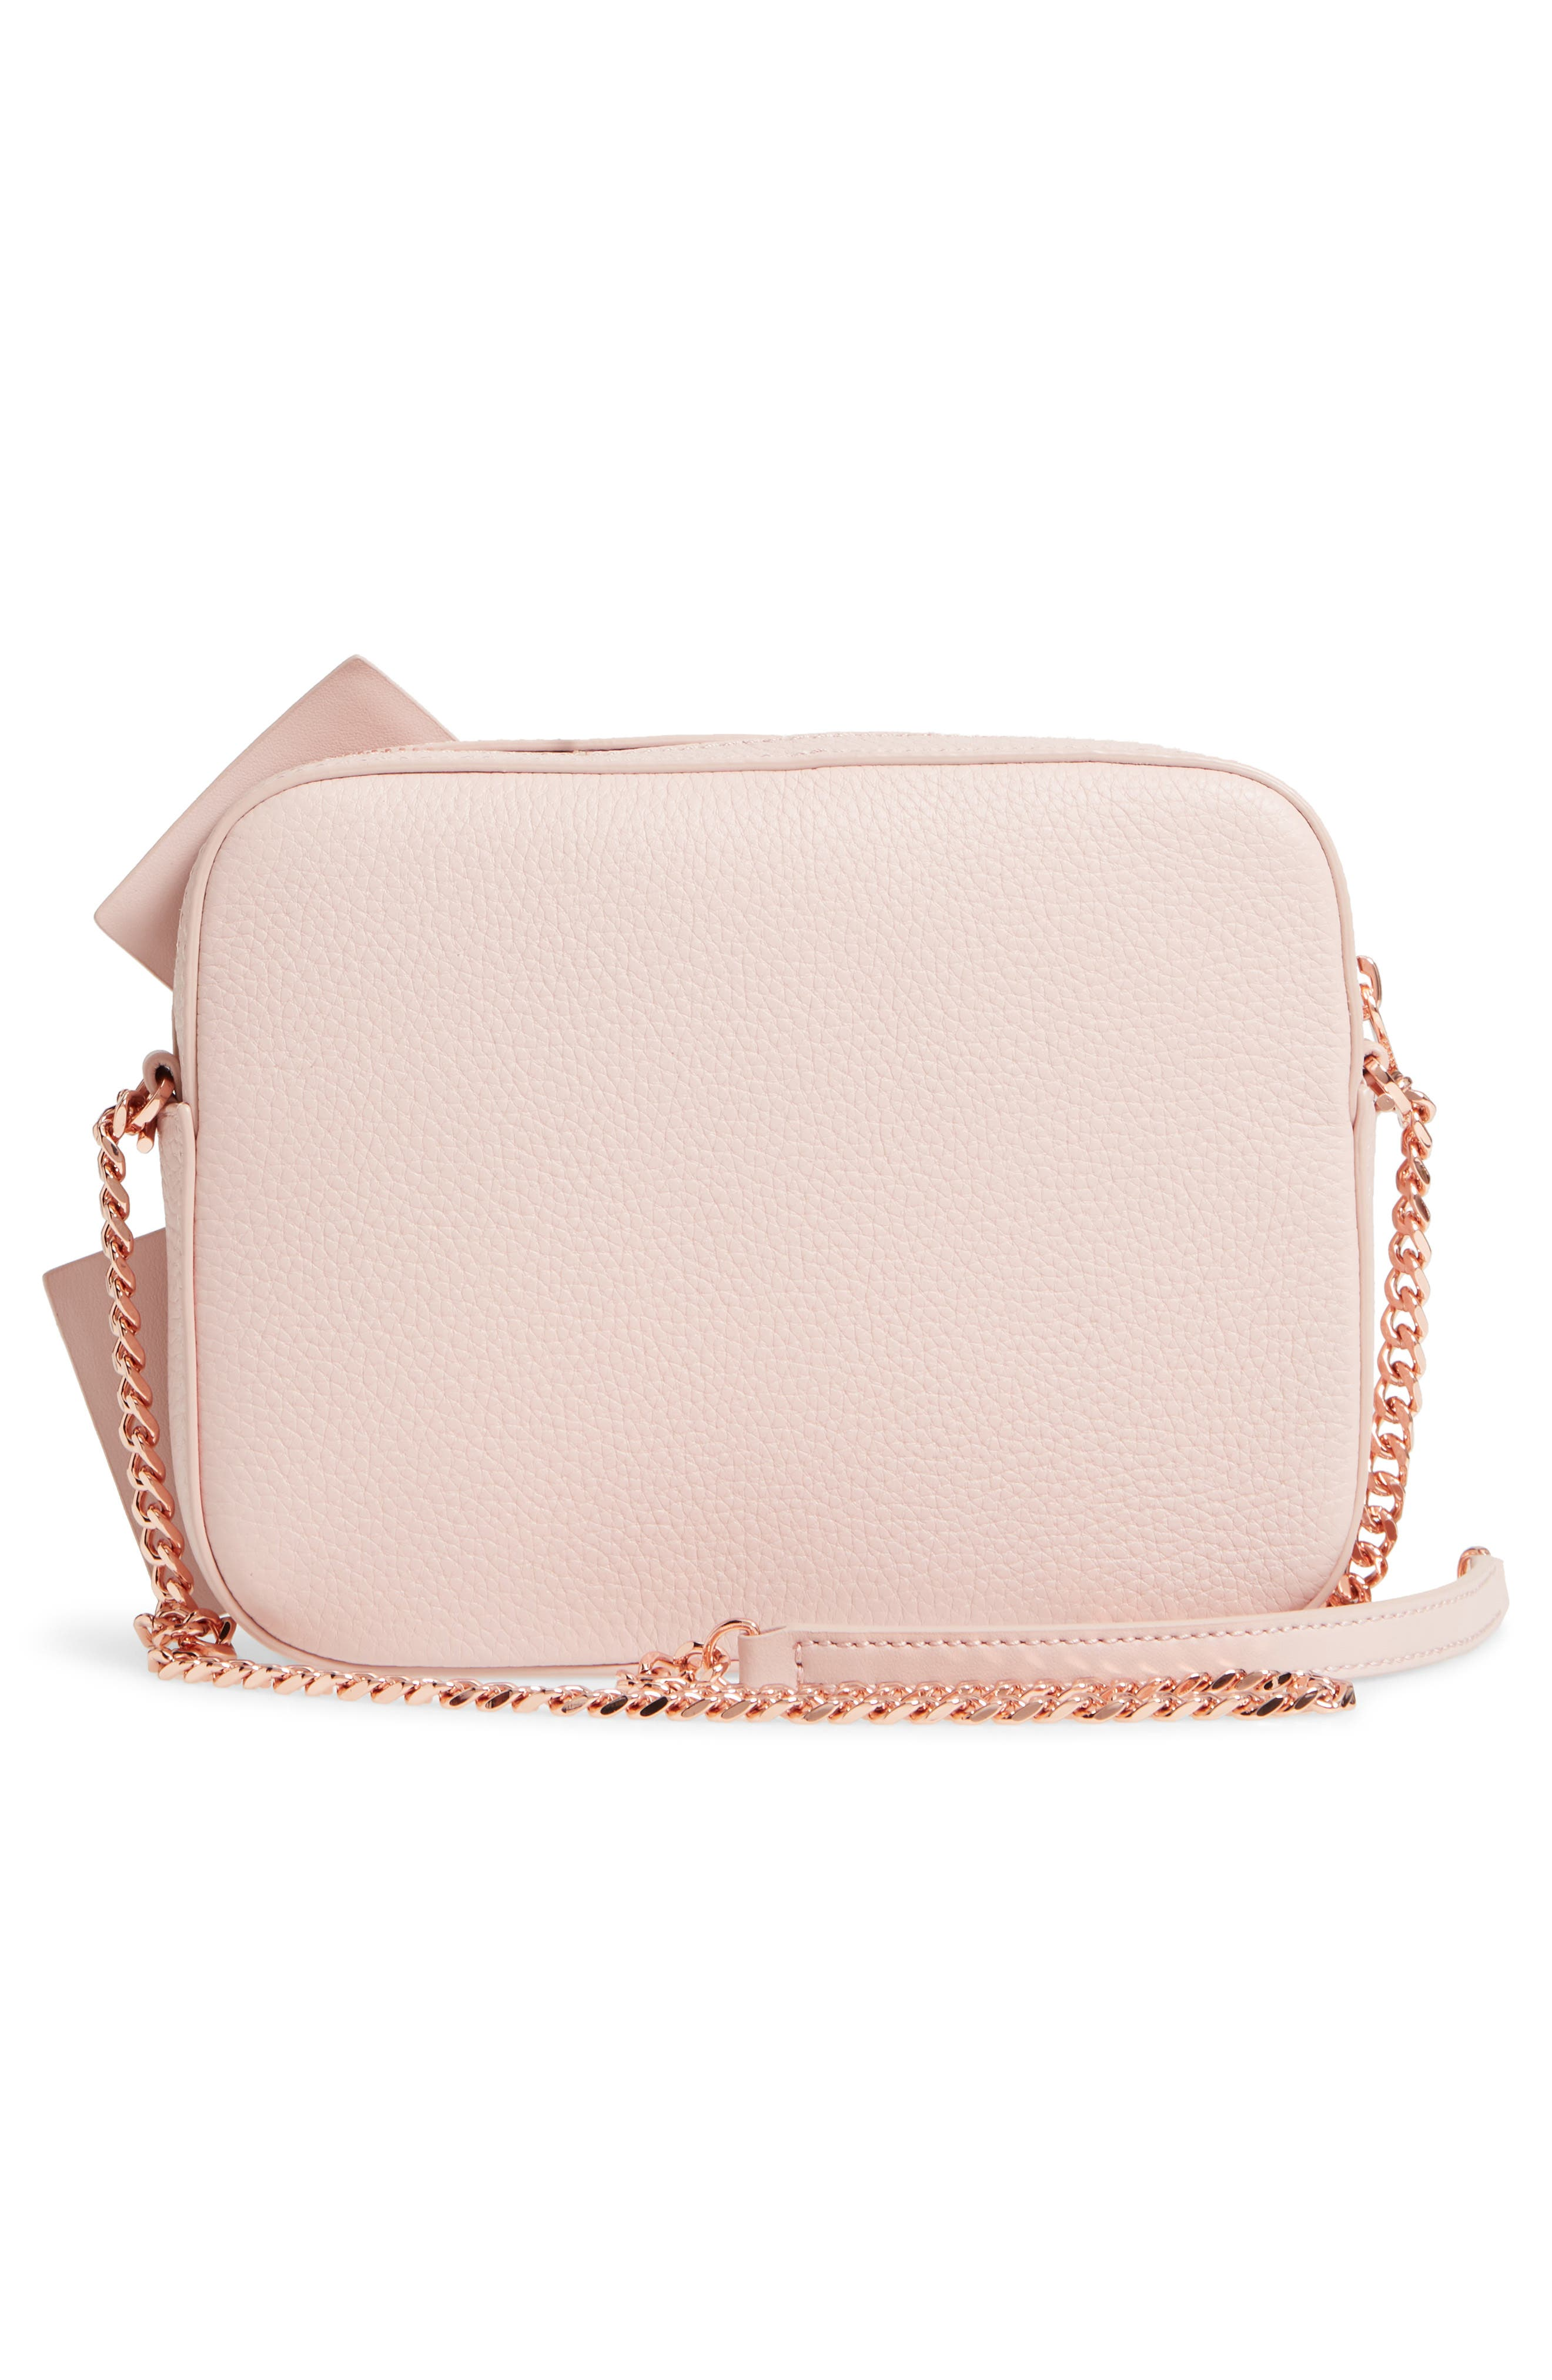 Giant Knot Leather Camera Bag,                             Alternate thumbnail 3, color,                             Nude Pink